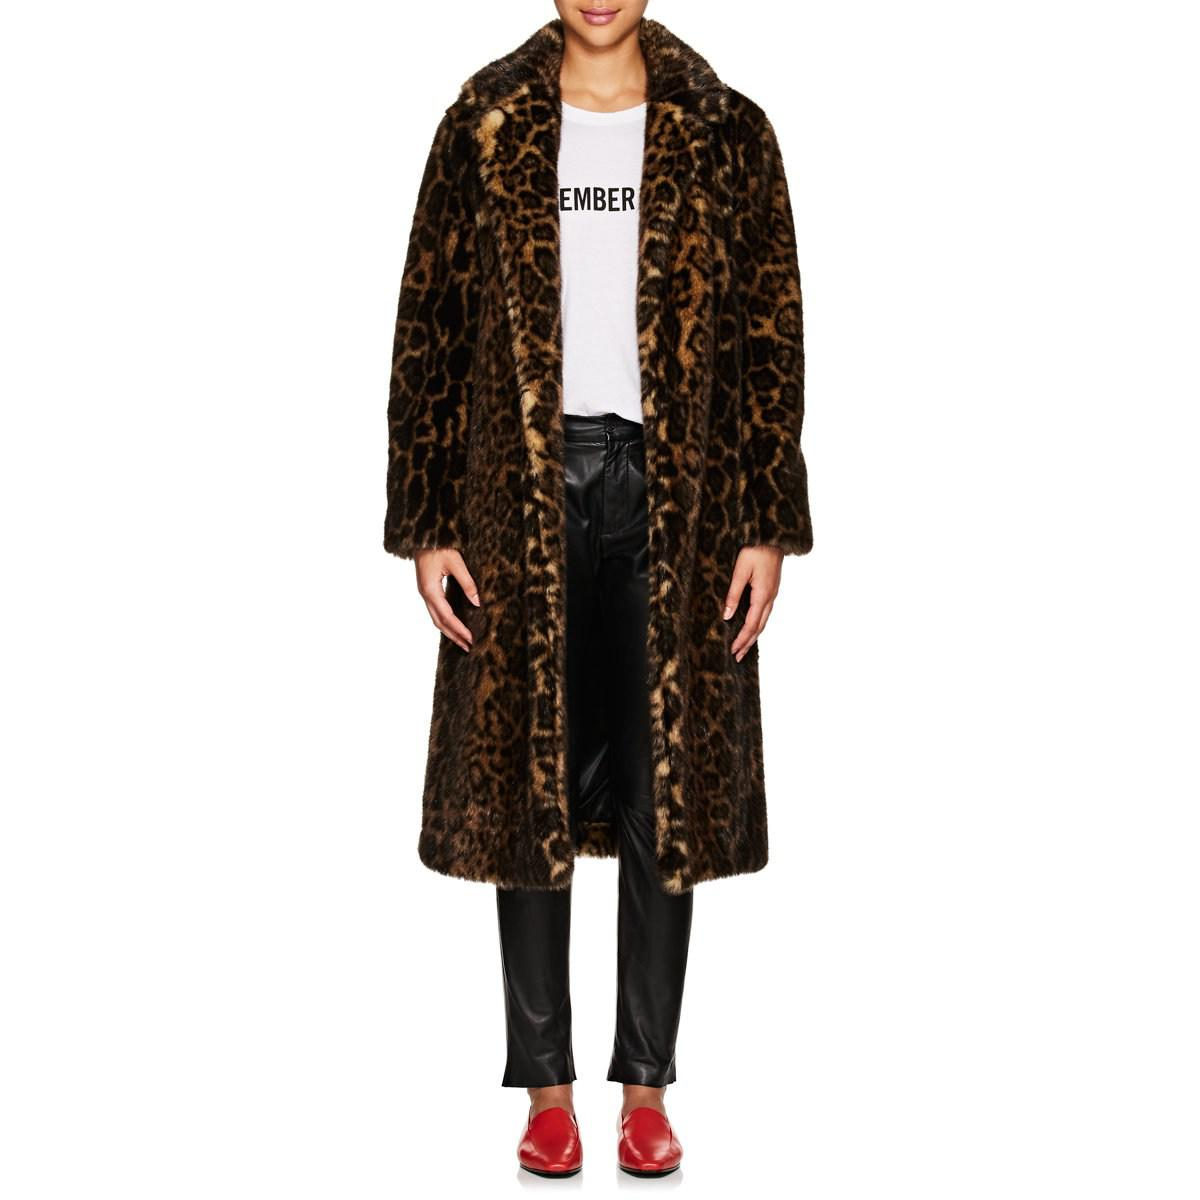 65a7c22c8631 Nili Lotan Marvin Leopard-print Faux-fur Long Coat in Black - Lyst